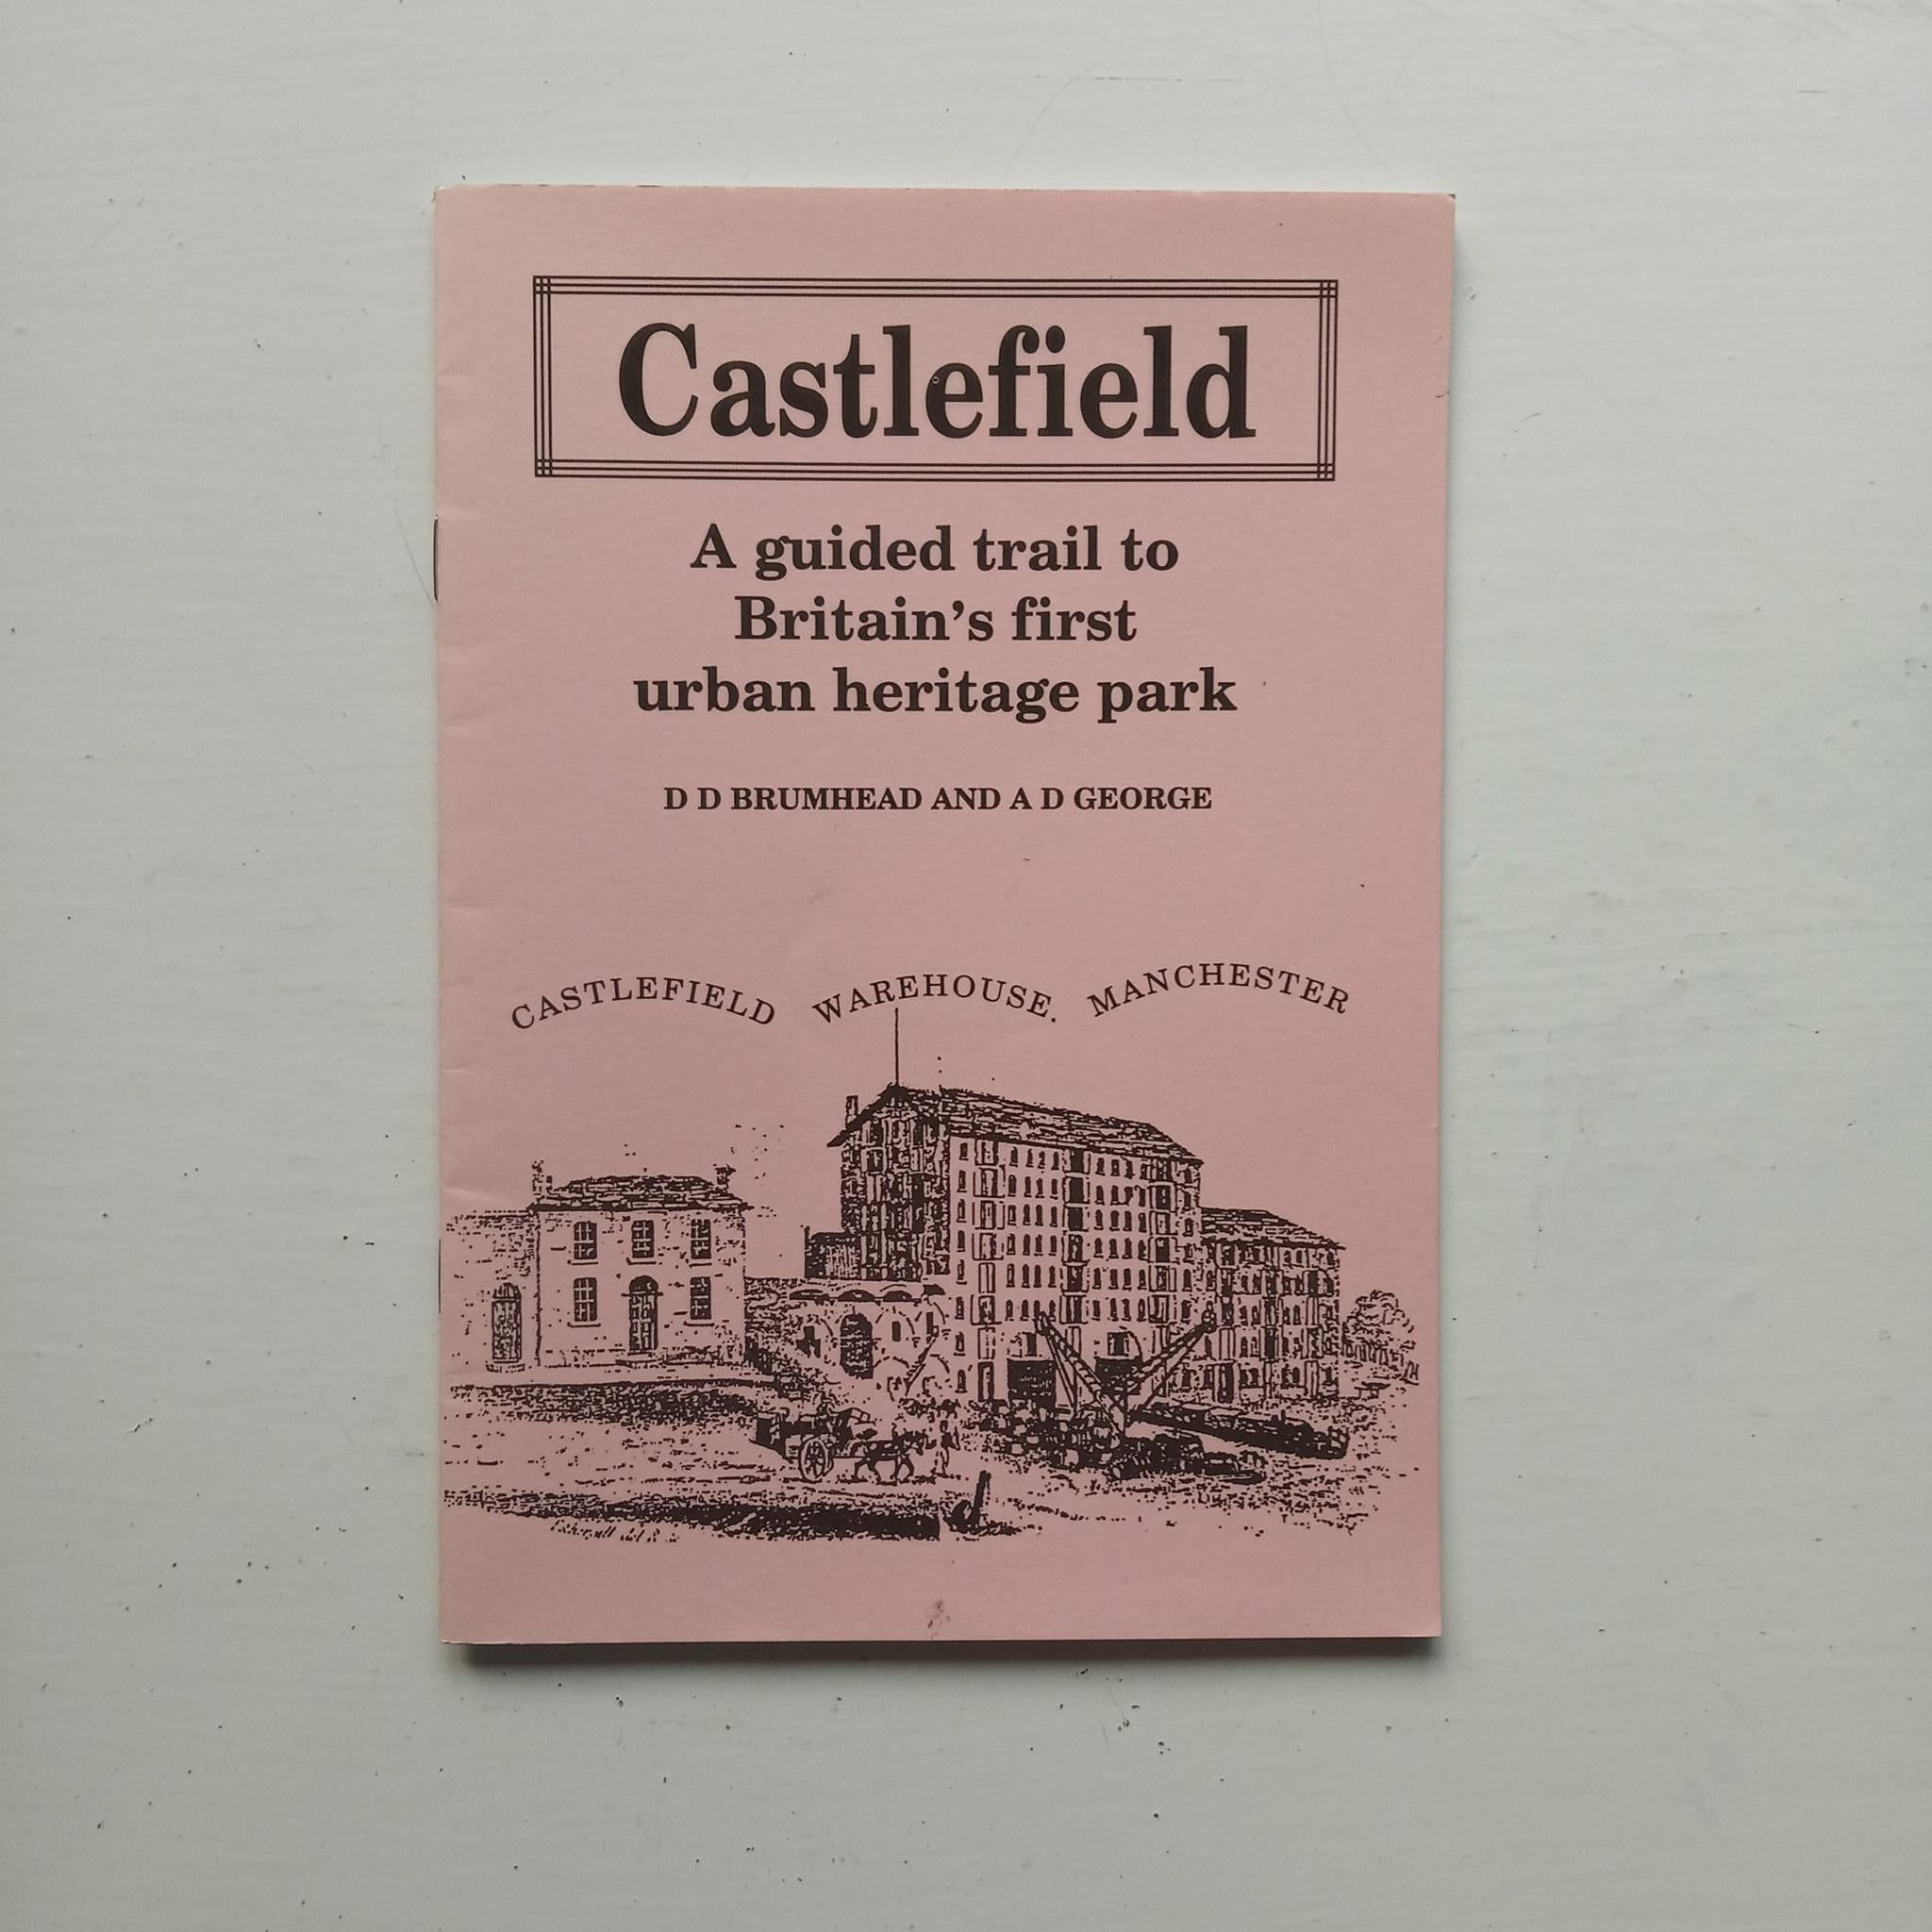 Castlefield: A guided trail to Britain's first urban heritage park by D.D. Brumhead and A. D. George